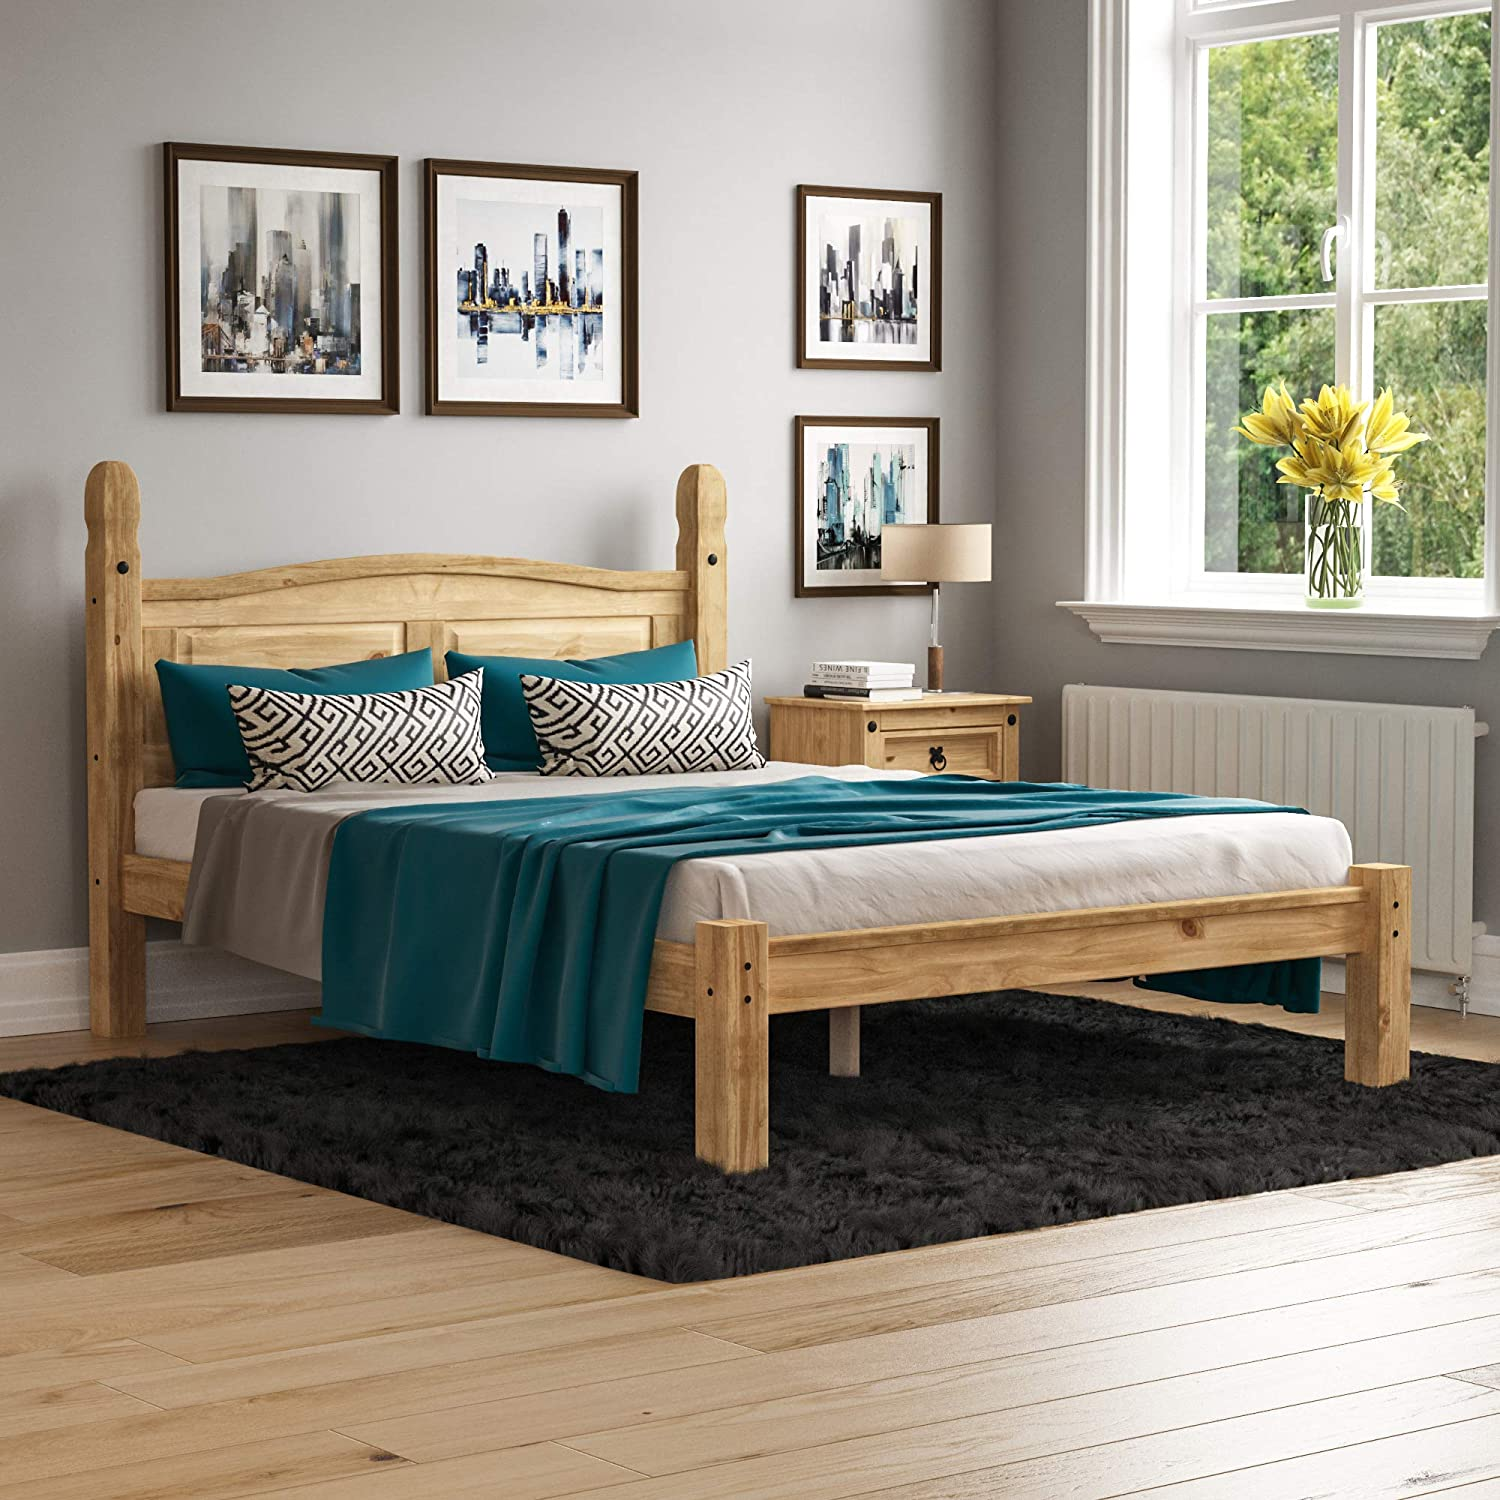 Vida Designs Corona Double Bed 4 Ft 6 Low Foot End Bed Frame Solid Pine Wood Amazon Co Uk Kitchen Home